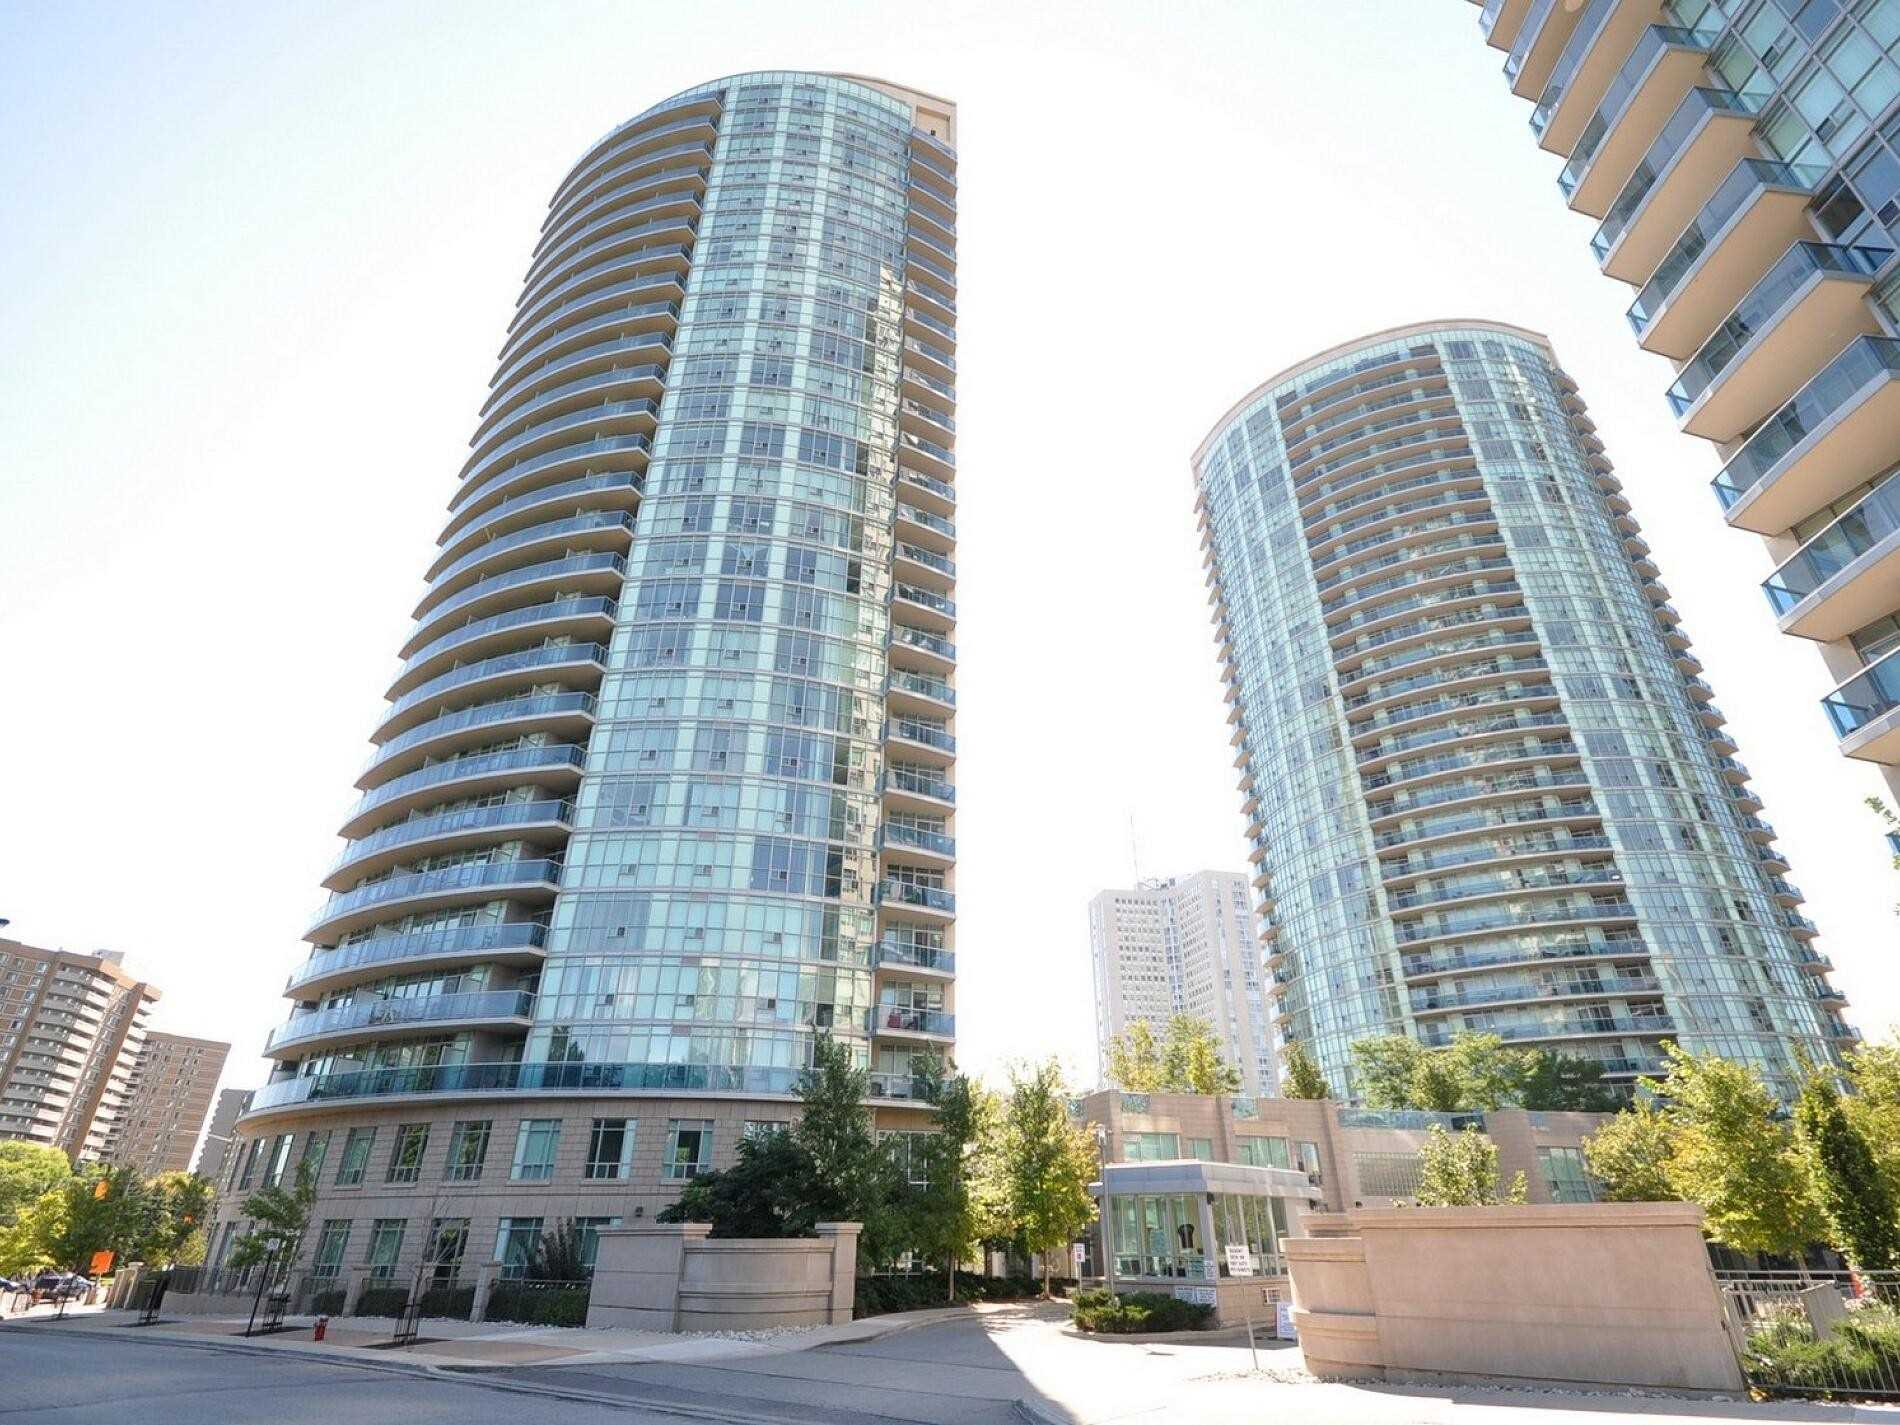 For Sale: 1603 - 90 Absolute Avenue, Mississauga, ON | 2 Bed, 2 Bath Condo for $525000.00. See 20 photos!